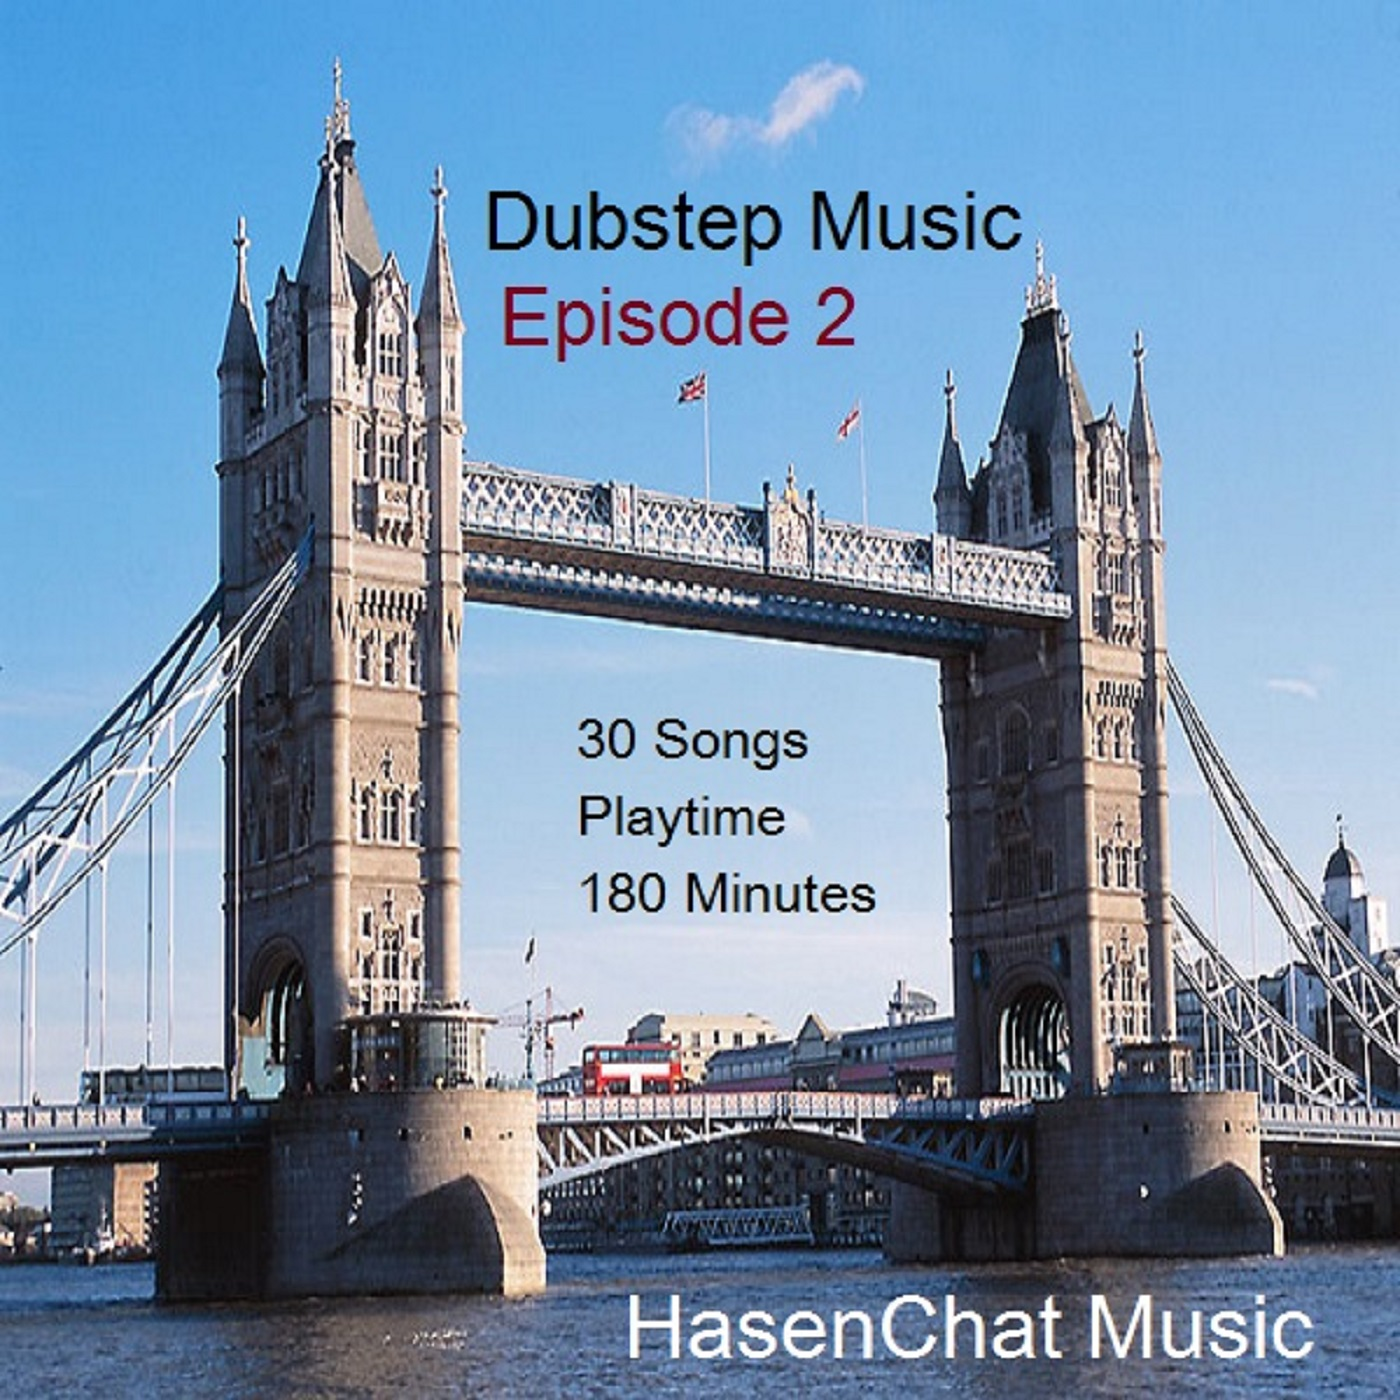 HasenChat Music - Dubstep Music - Episode 2